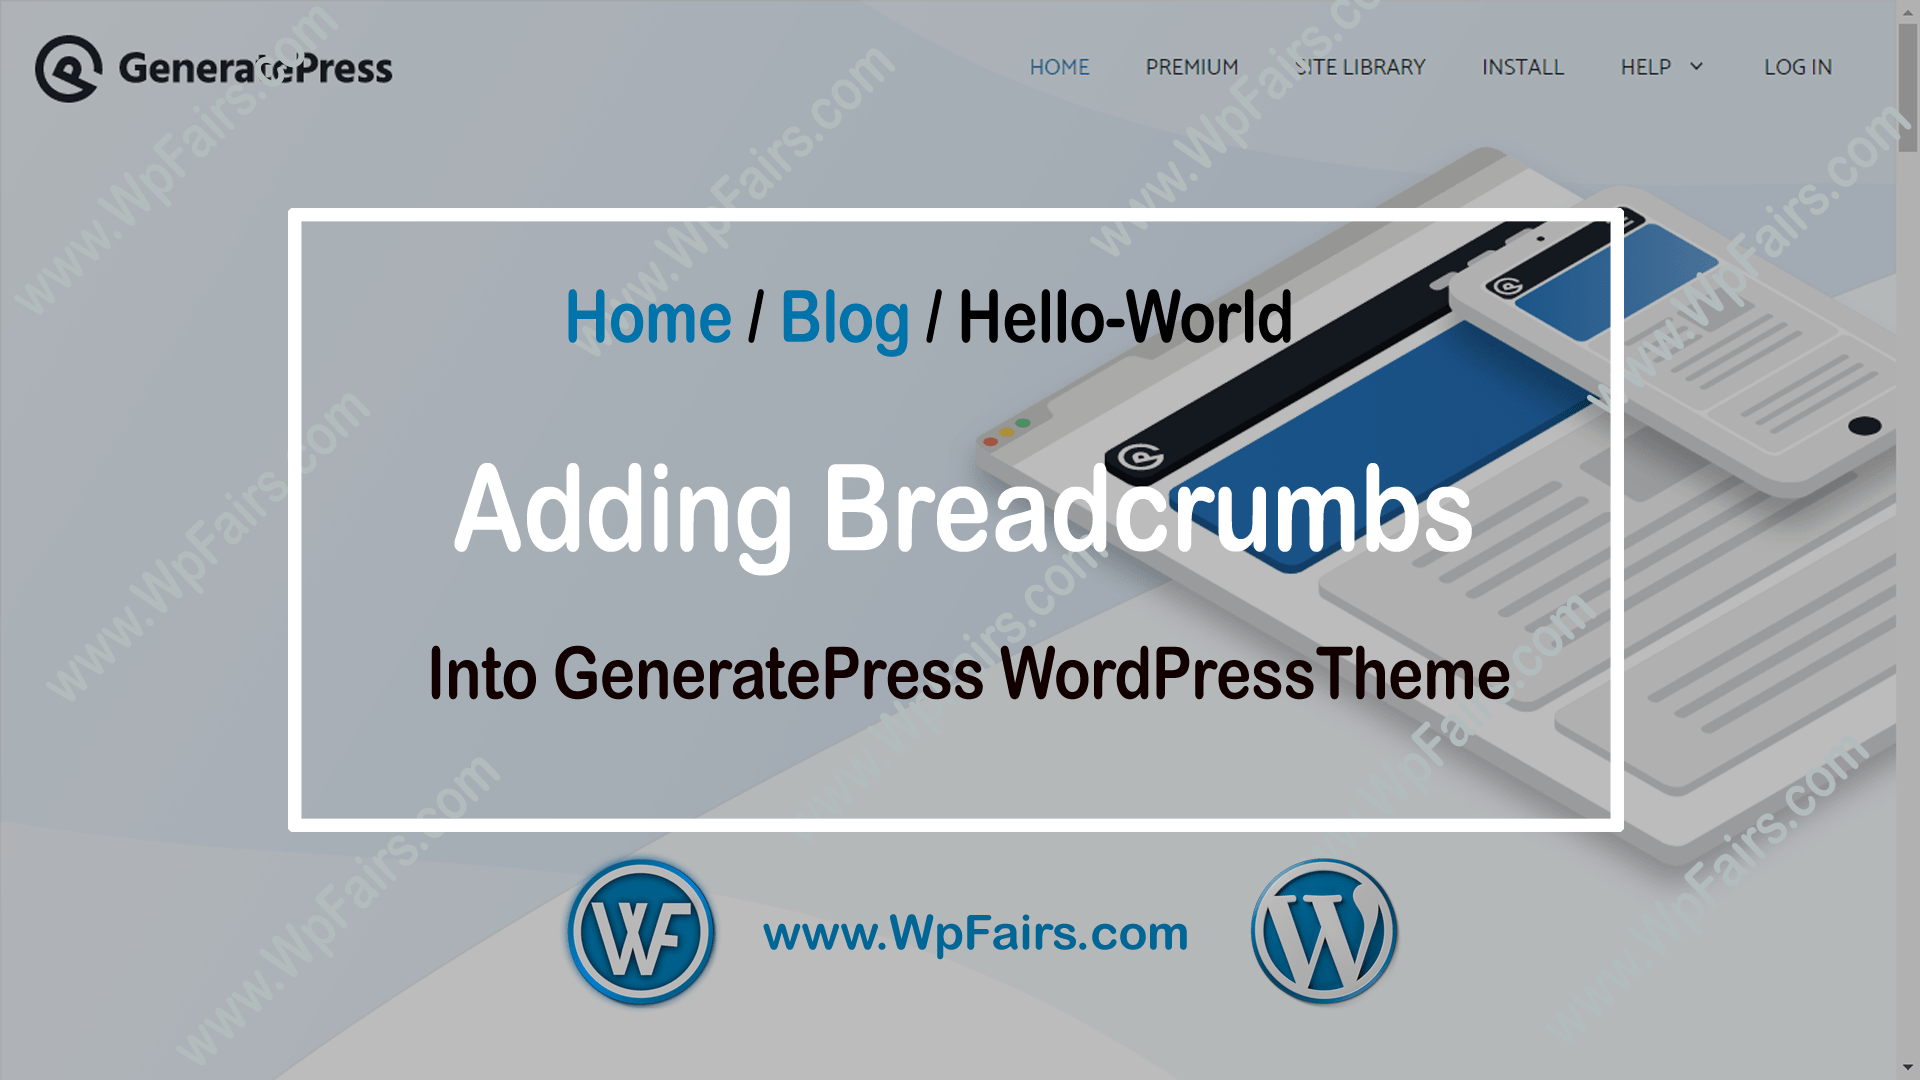 How To Add Breadcrumb For Generatepress WordPress Theme